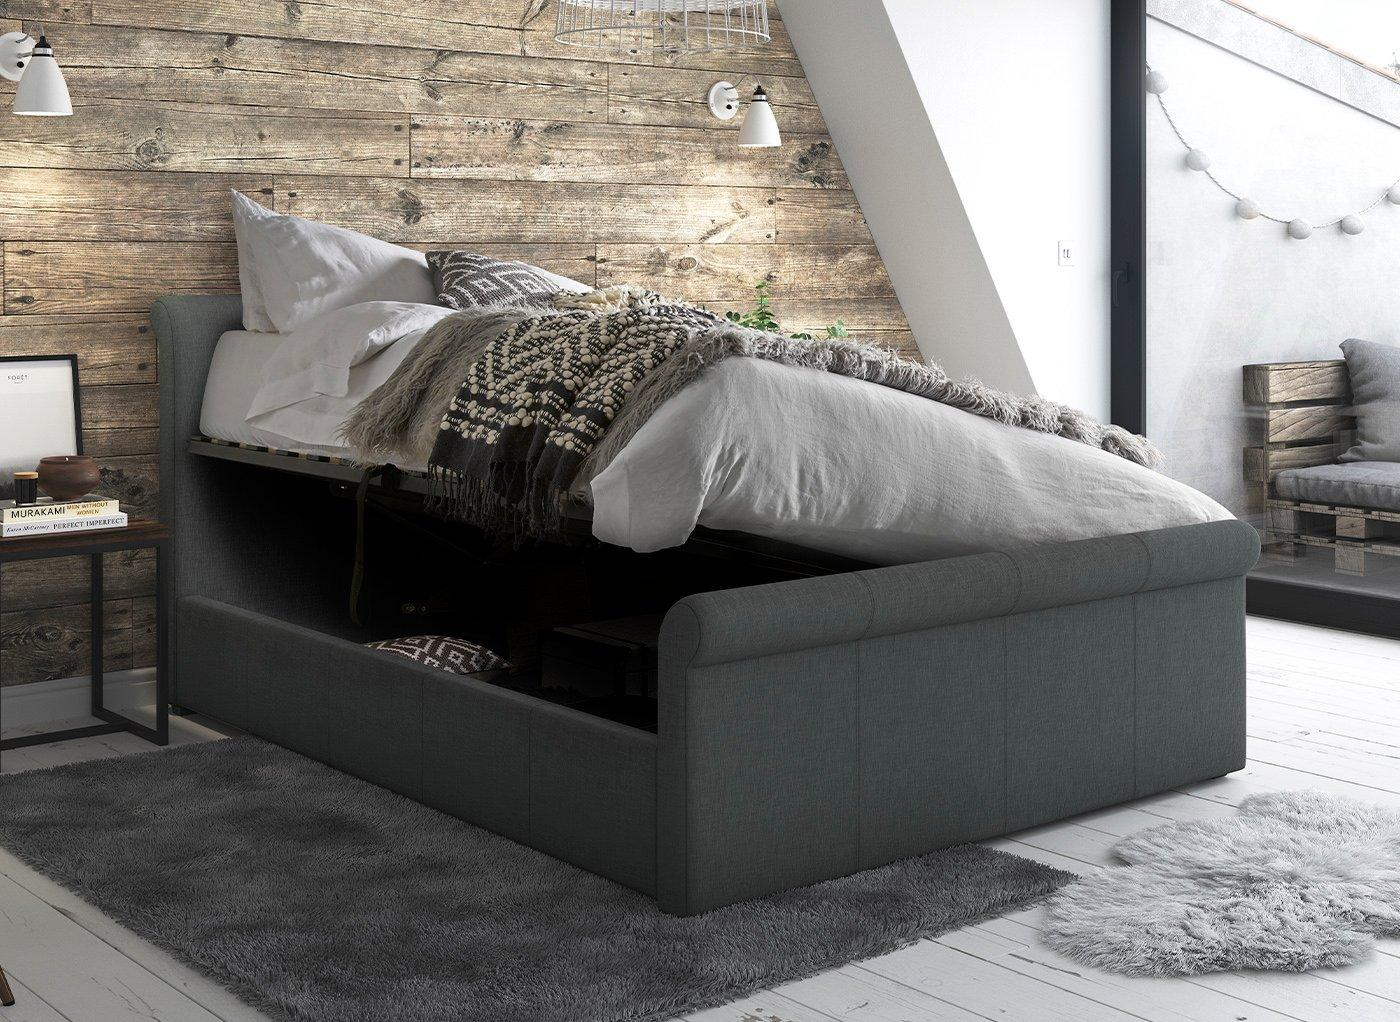 Wilson Grey Fabric Upholstered Bed Frame 5'0 King